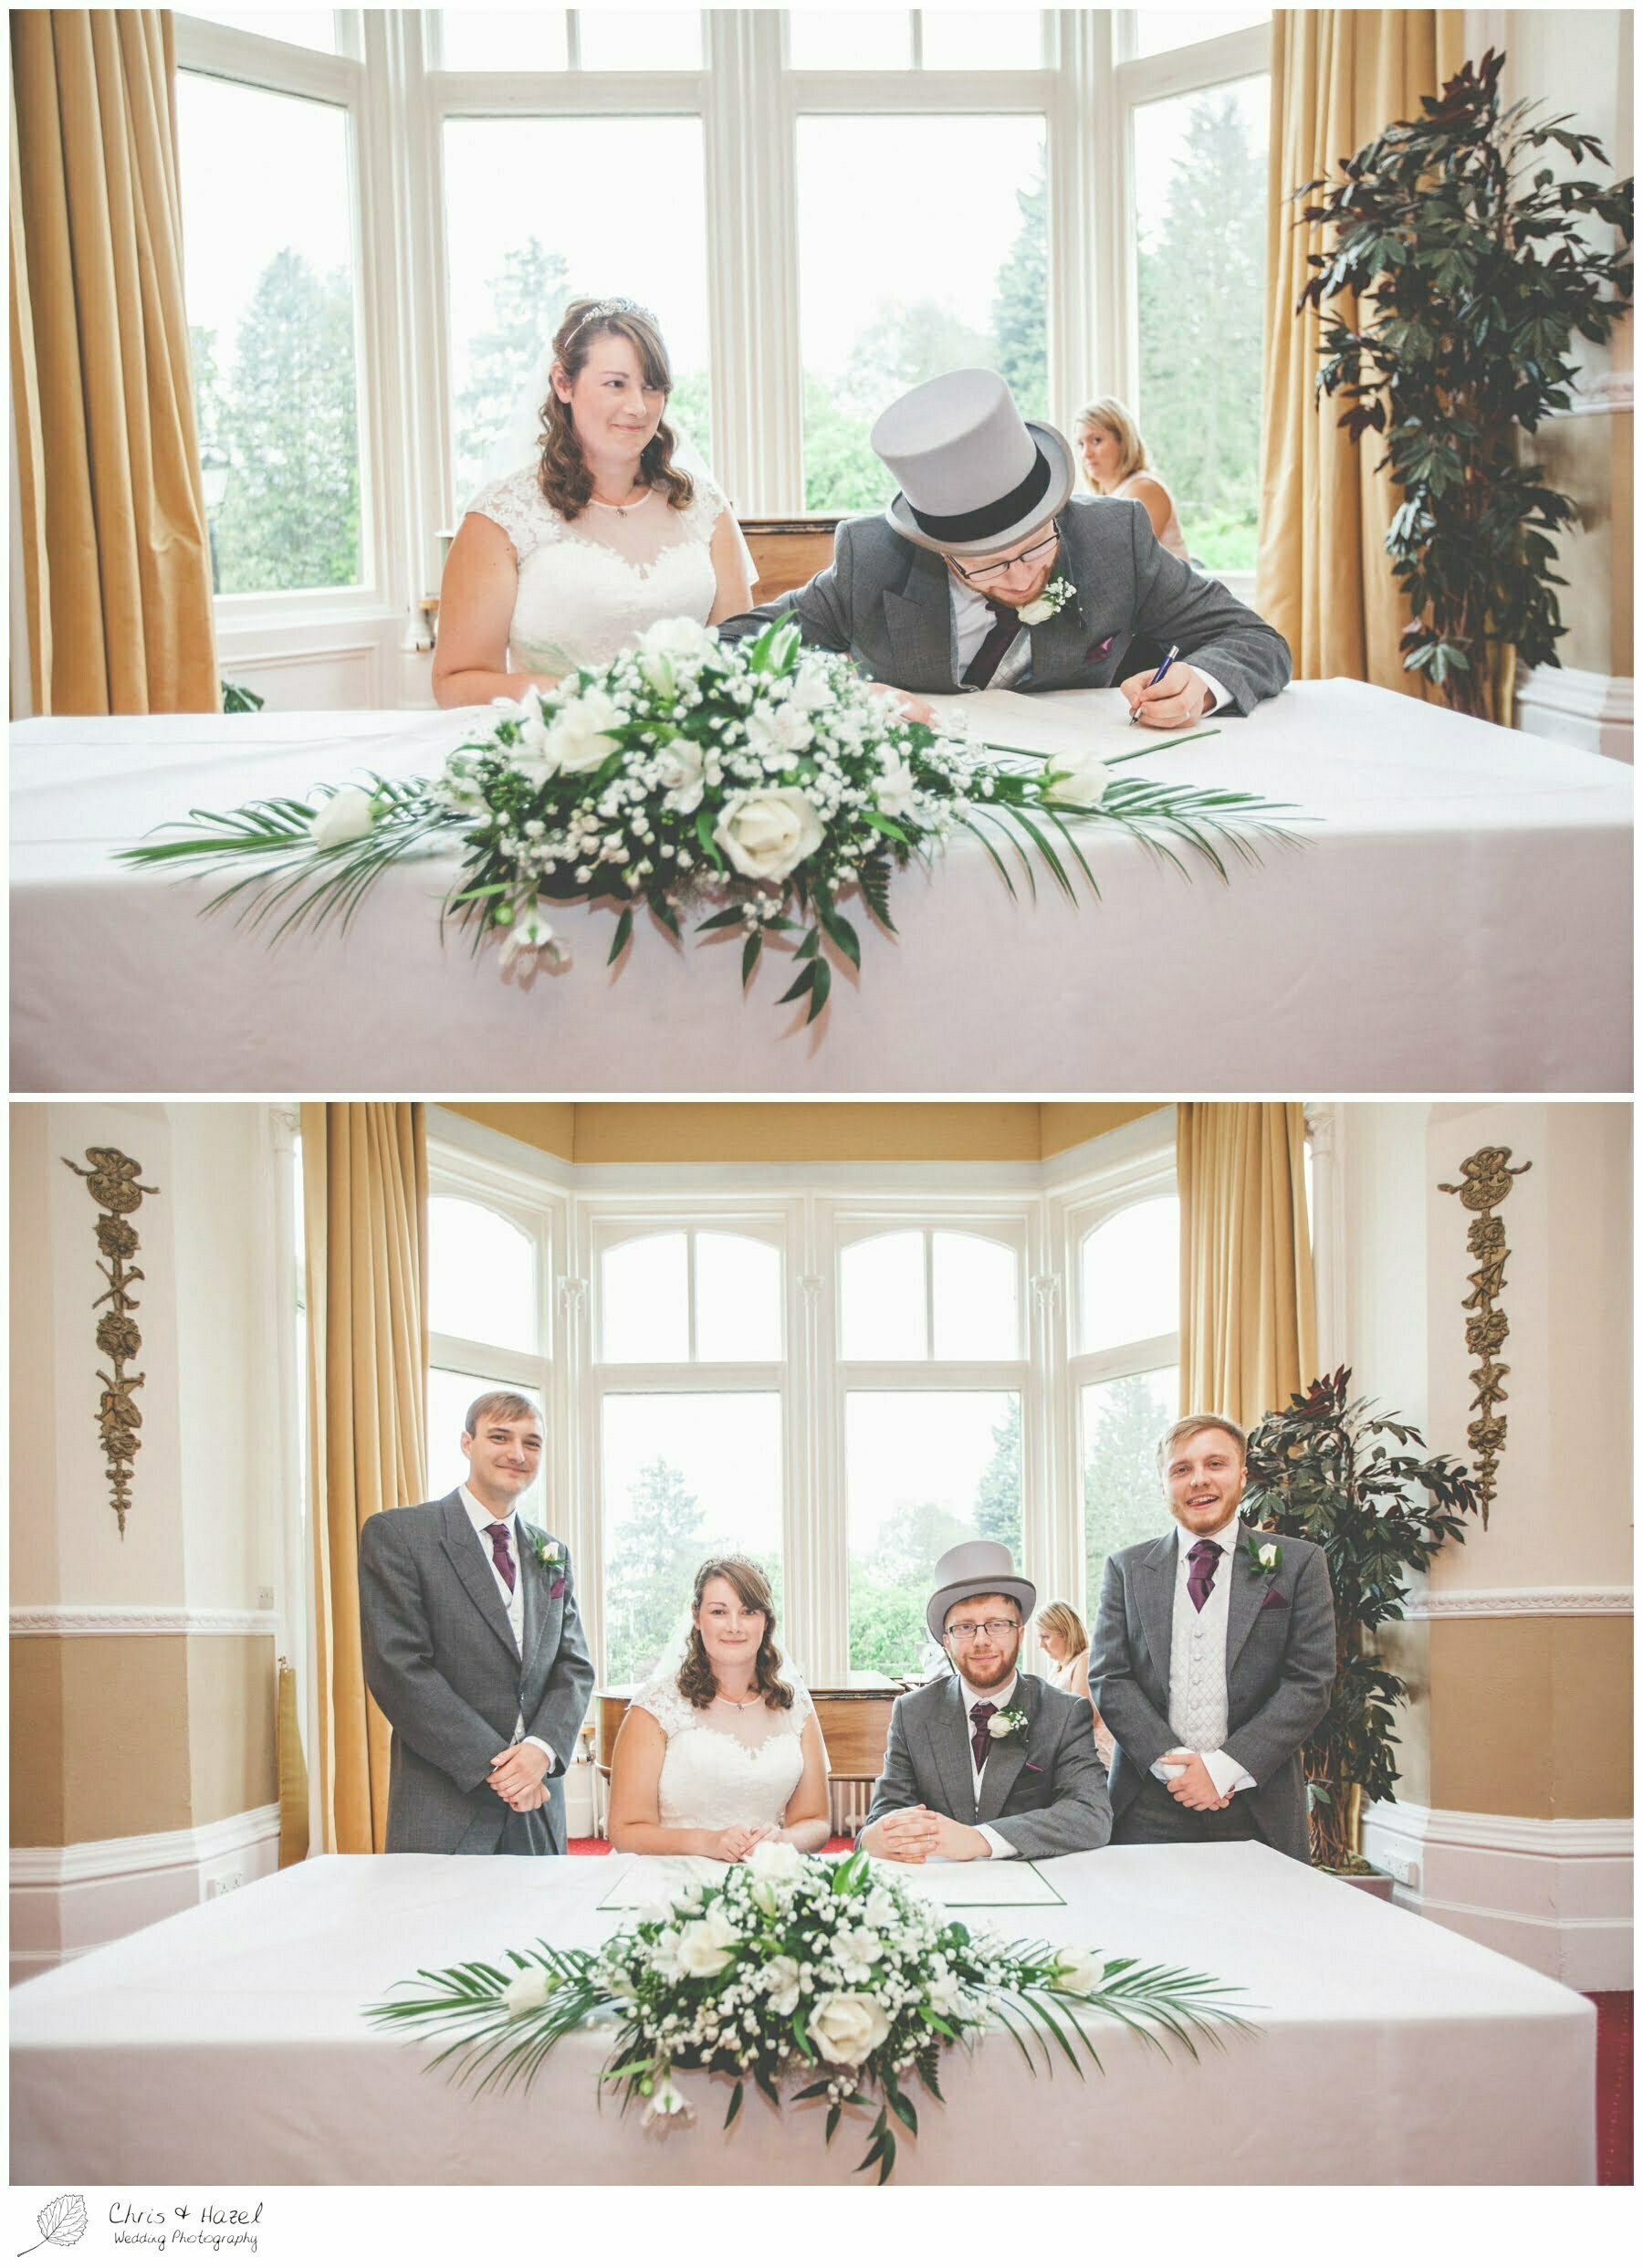 bride and groom signing wedding register, wedding ceremony, Ilkley wedding photographer, Ilkley wedding photography, The Craiglands hotel wedding photography, west Yorkshire wedding photography, chris and hazel wedding photography, emily nunwick, sam nicholson, emily nicholson,